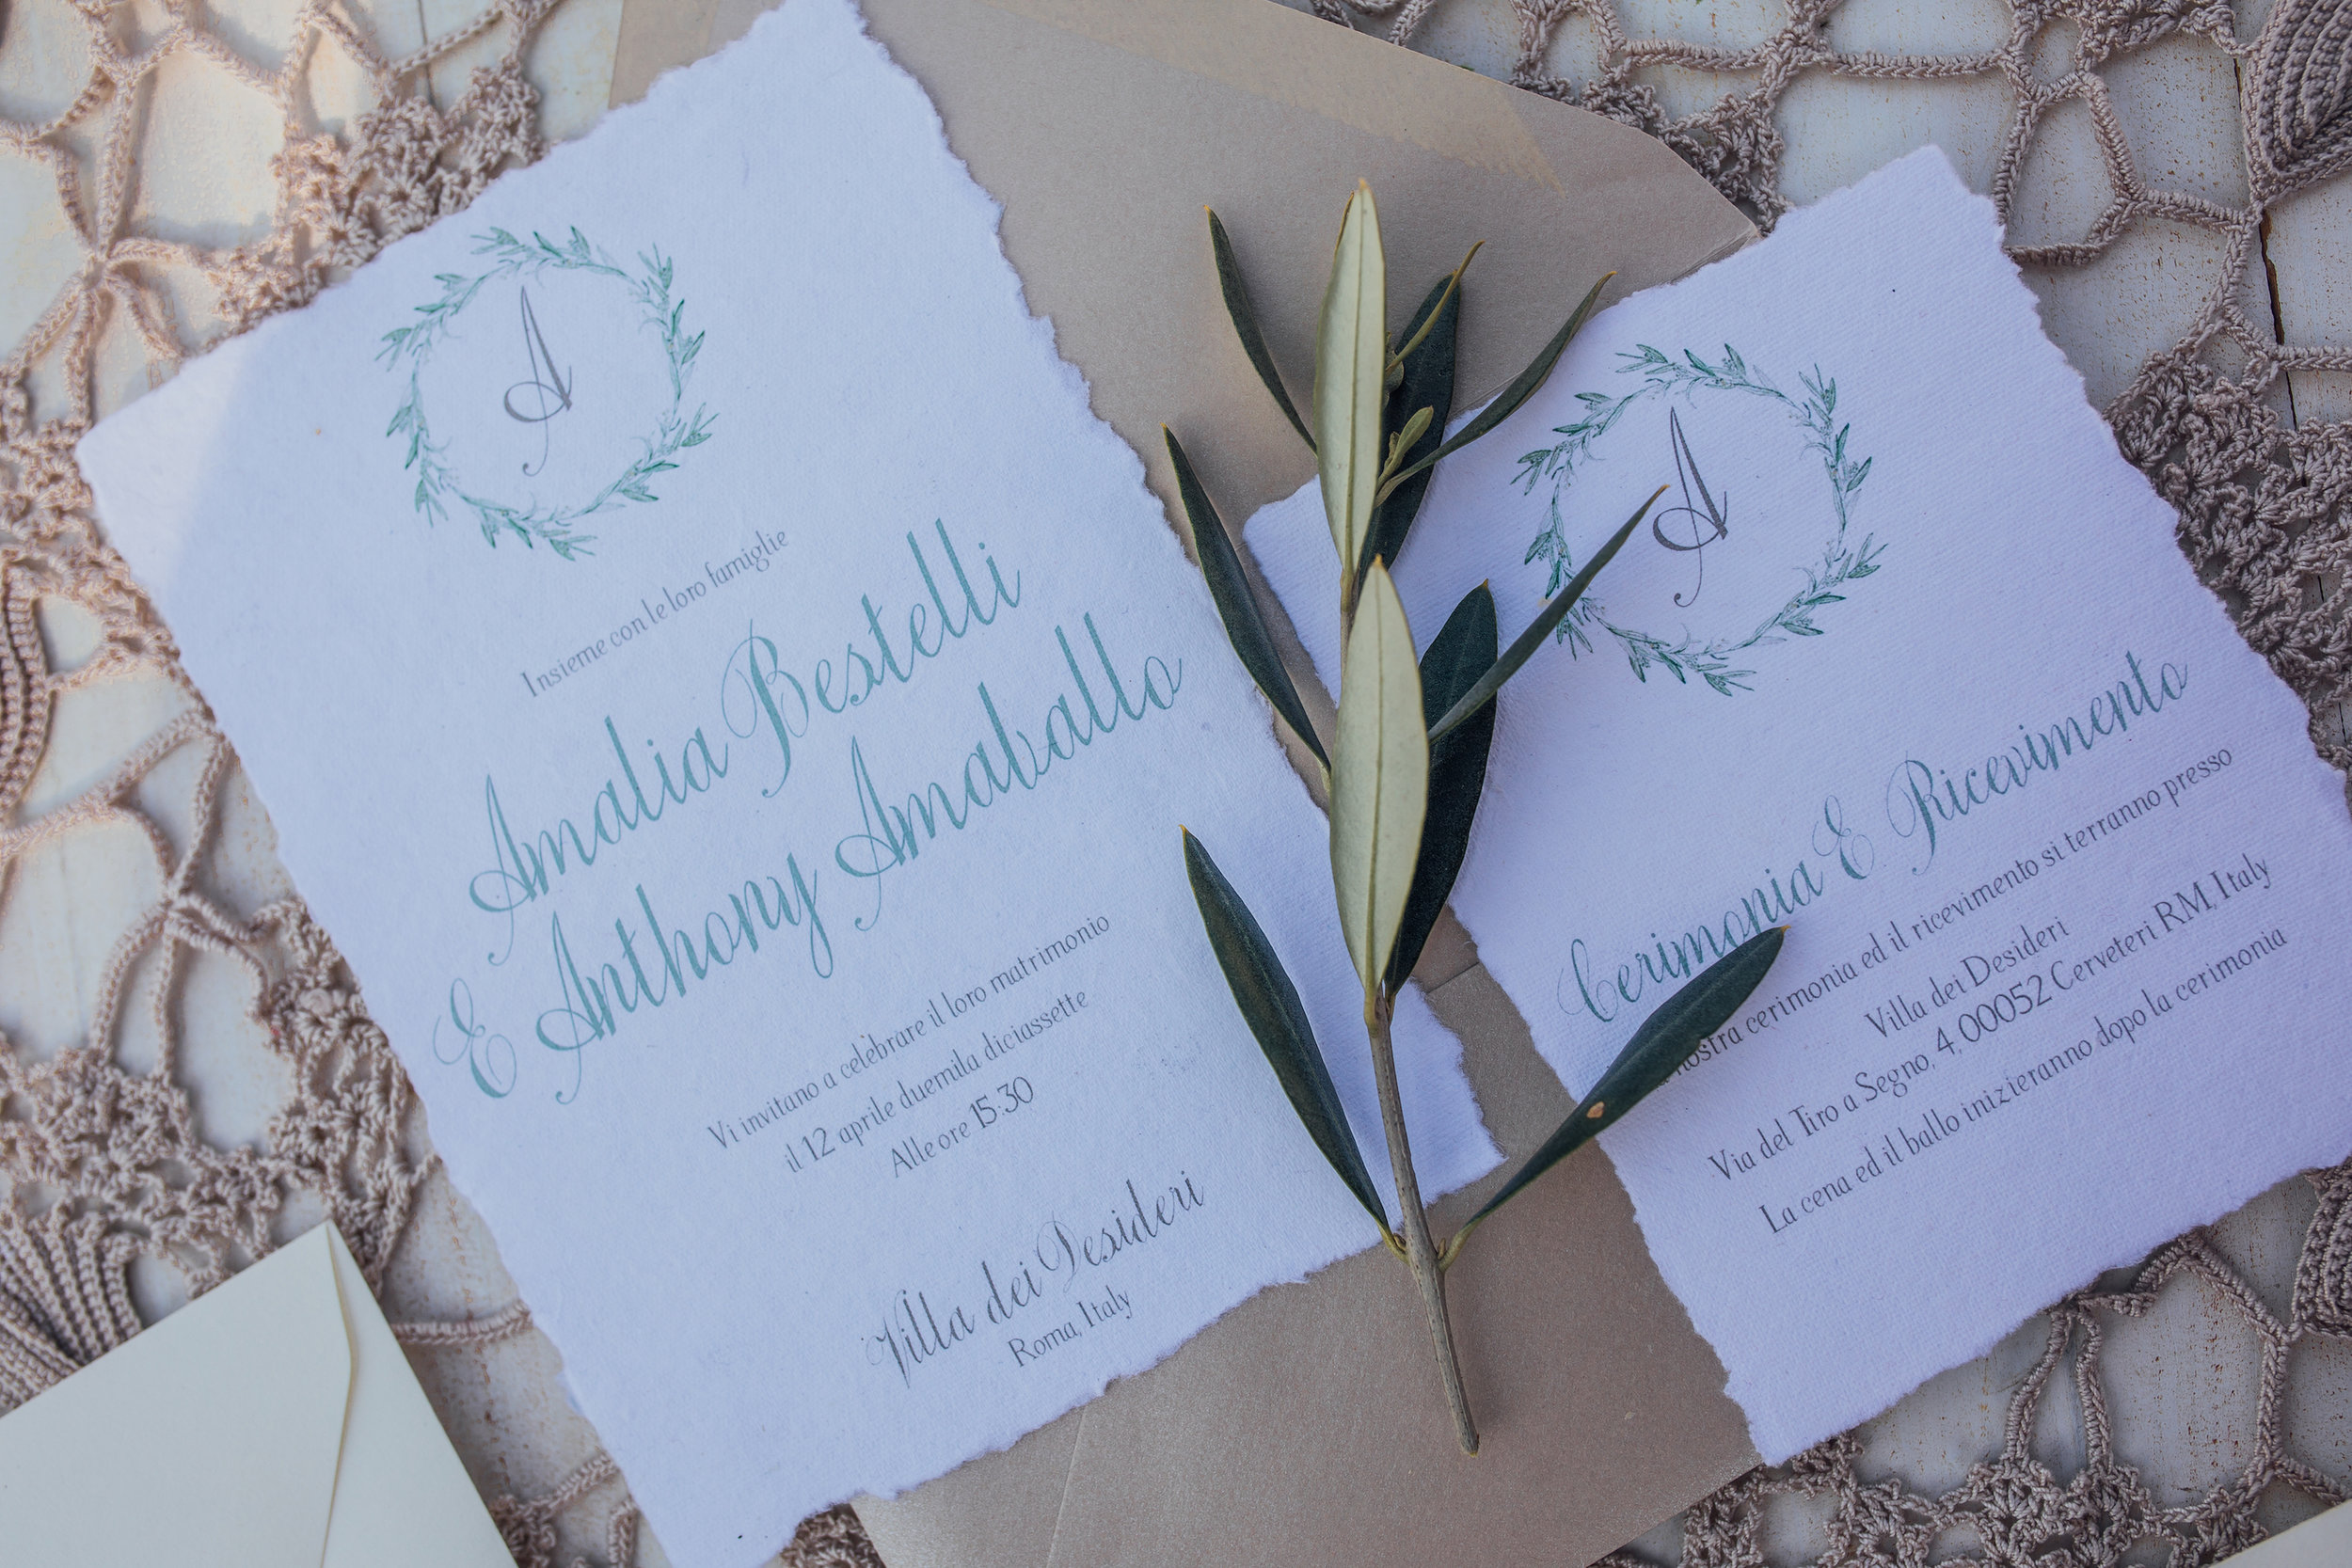 Handmade Monogrammed Wedding Invitation Suite with deckled edge from a Lemon Yellow Garden Wedding Styled Shoot in Rome Italy - by Jess Palatucci Photography - as seen on www.BrendasWeddingBlog.com